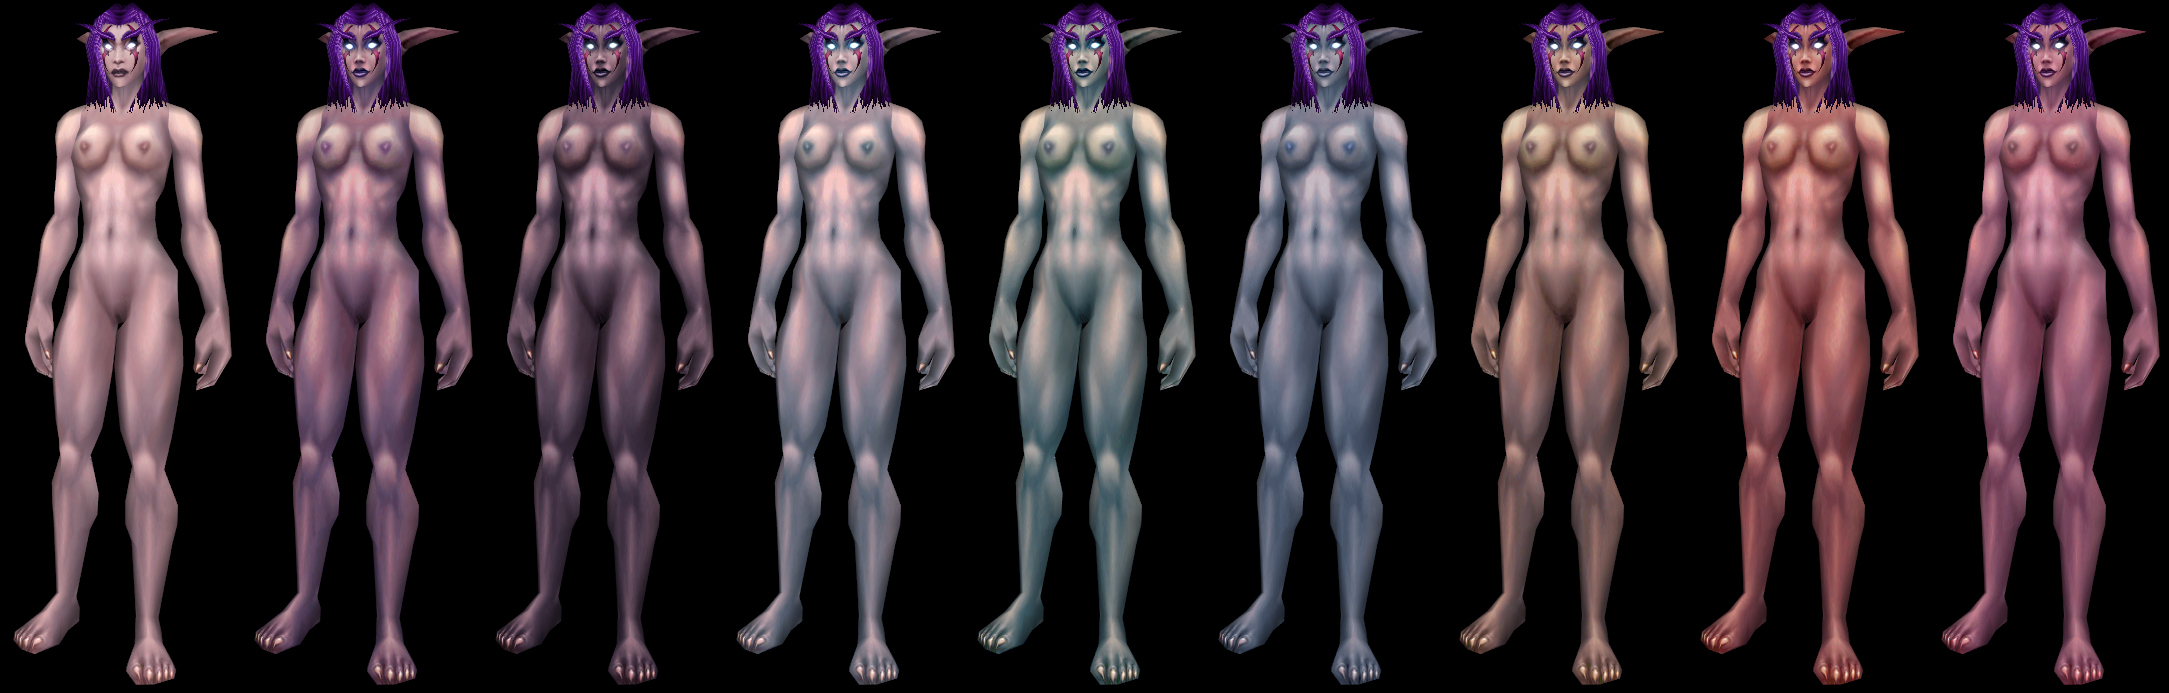 WoW night elf porn nude pron videos